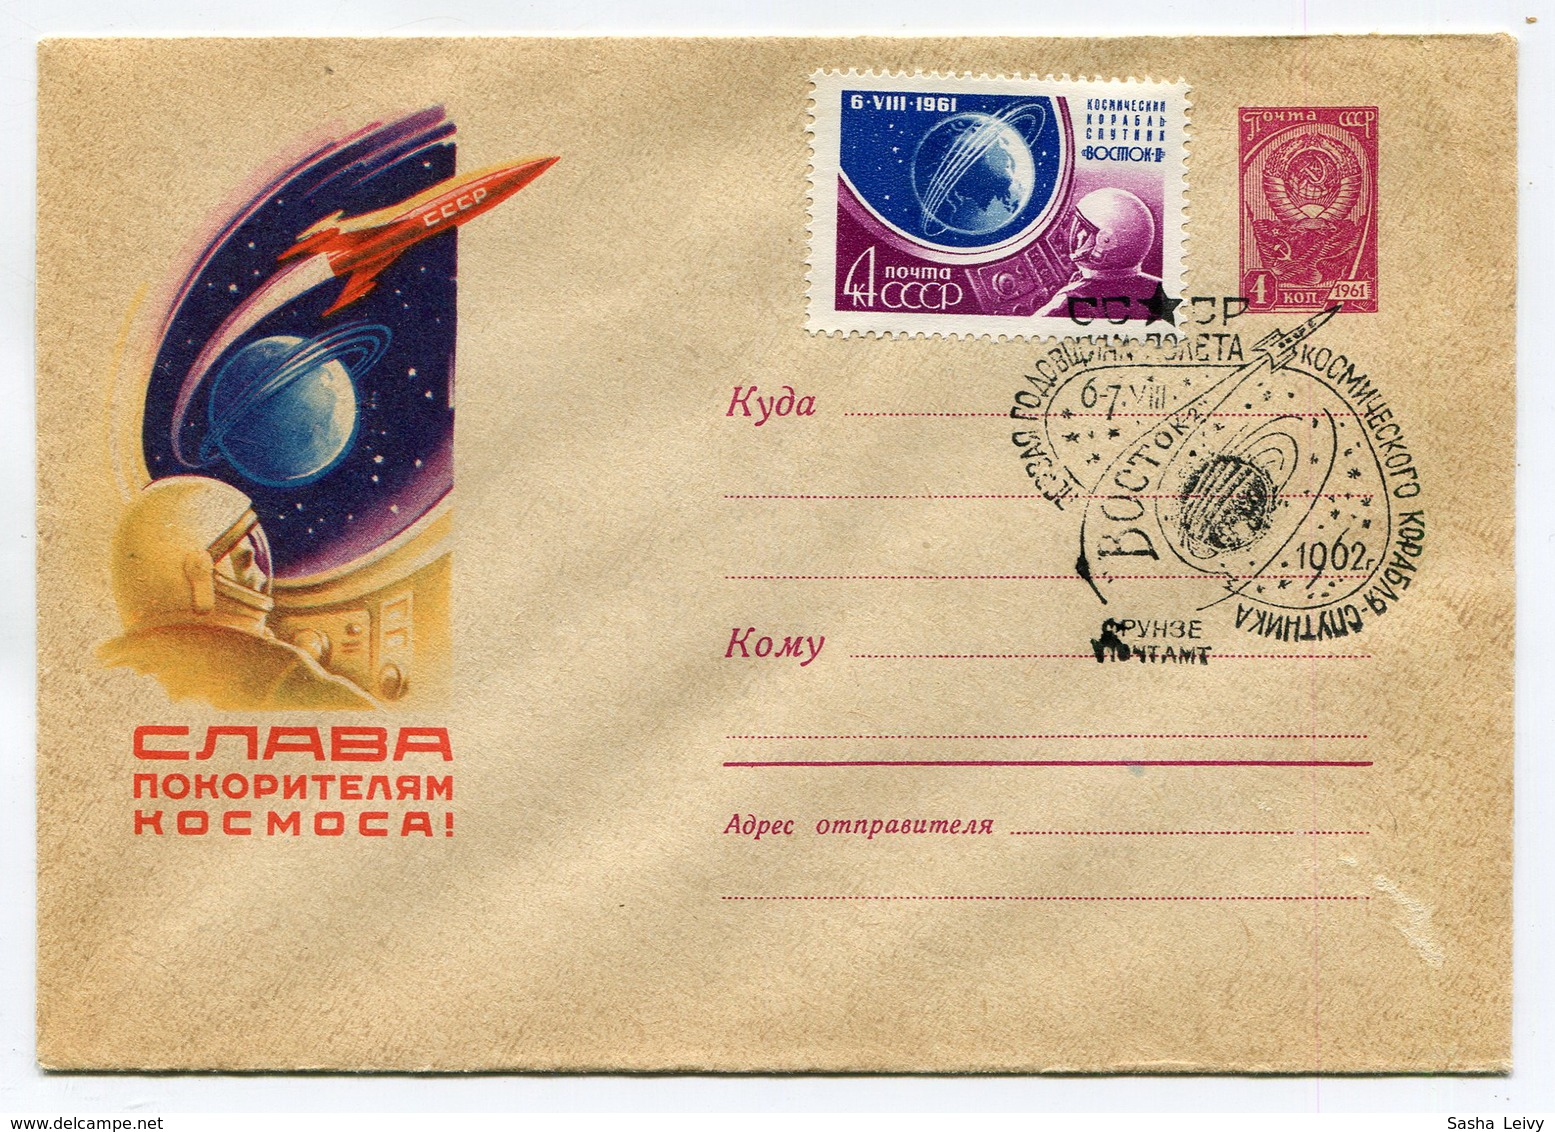 SPACE COVER USSR 1961 GLORY TO SPACE EXPLORERS  #61-281 SPP ANNIVERSARY OF THE FIRST SPACE FLIGHT FRUNZE - Russia & USSR